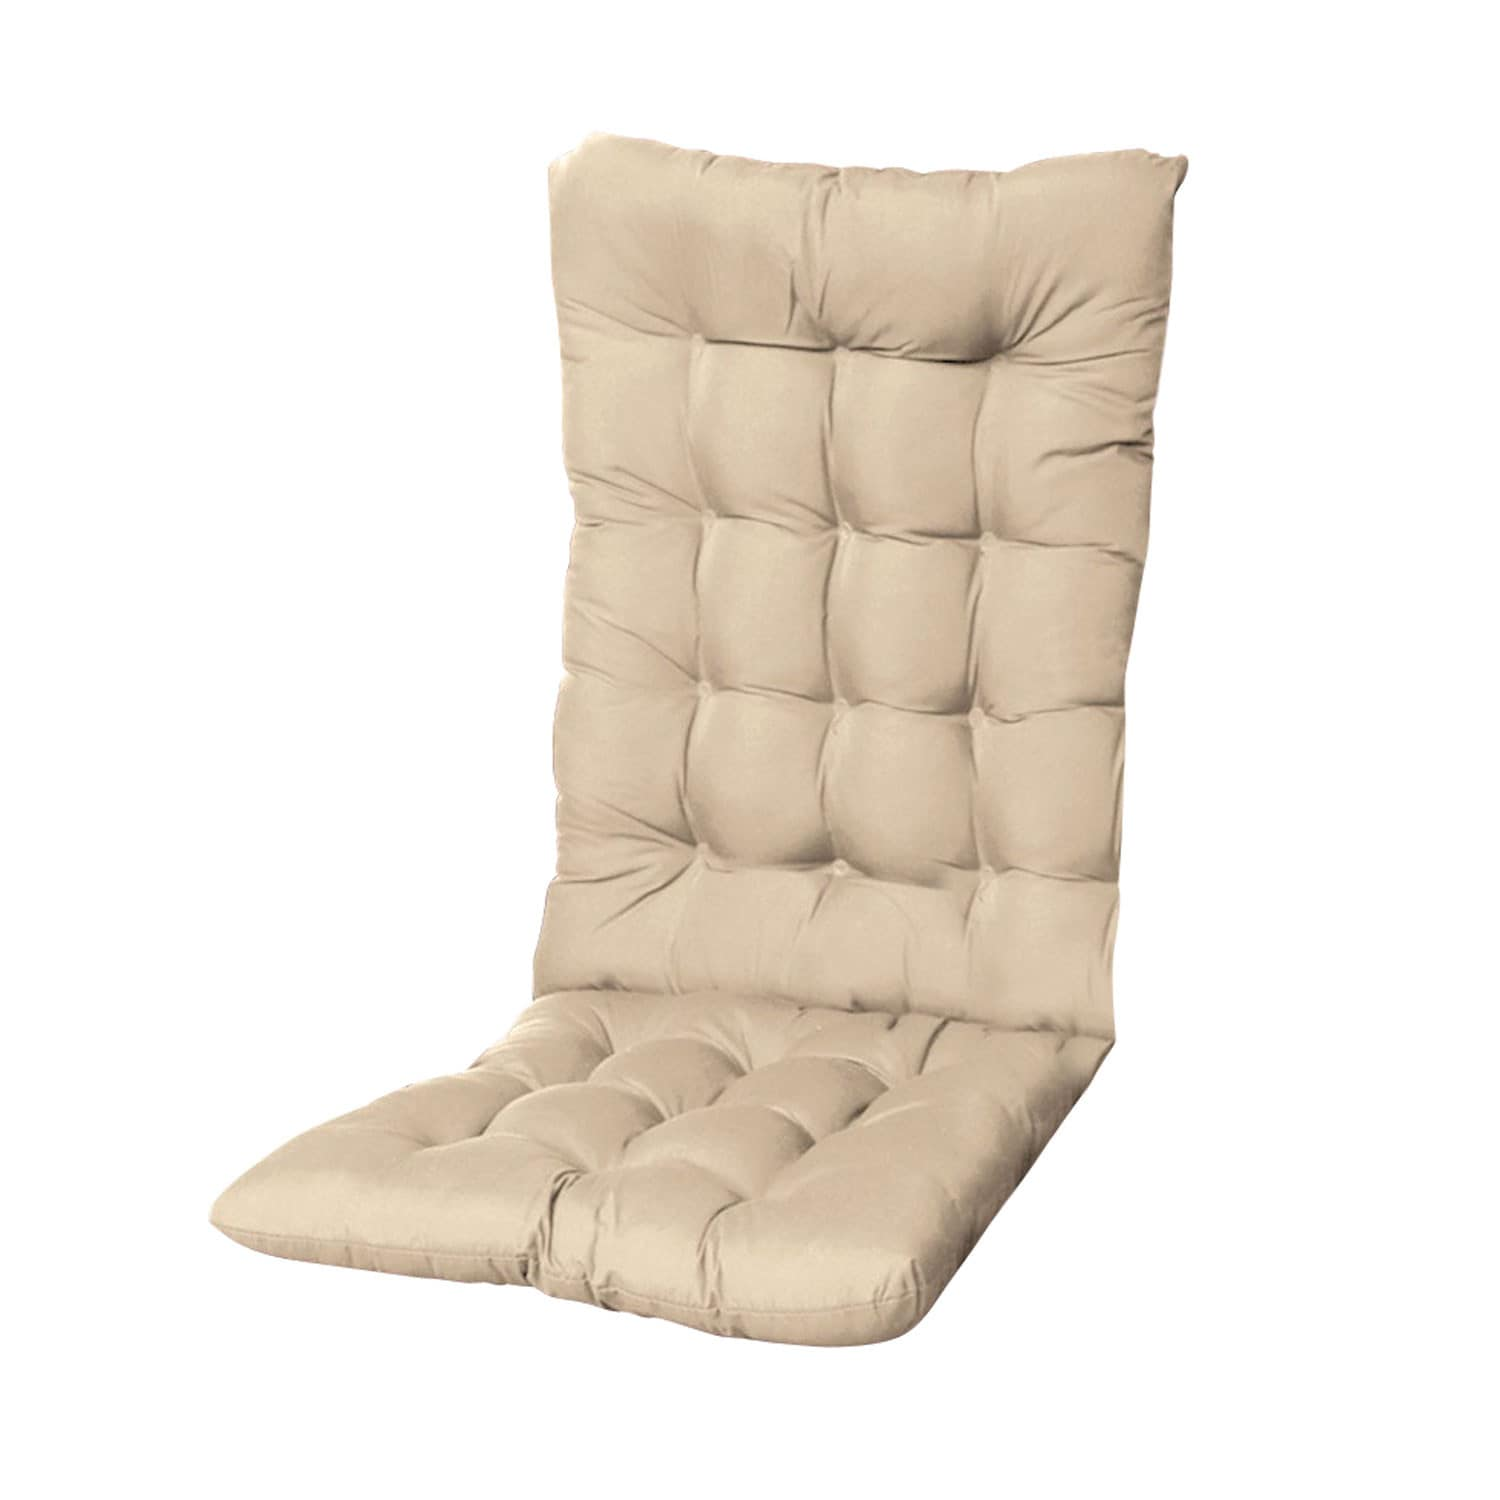 2 piece rocking chair cushions ed gein miles kimball set with securing details about ties beige